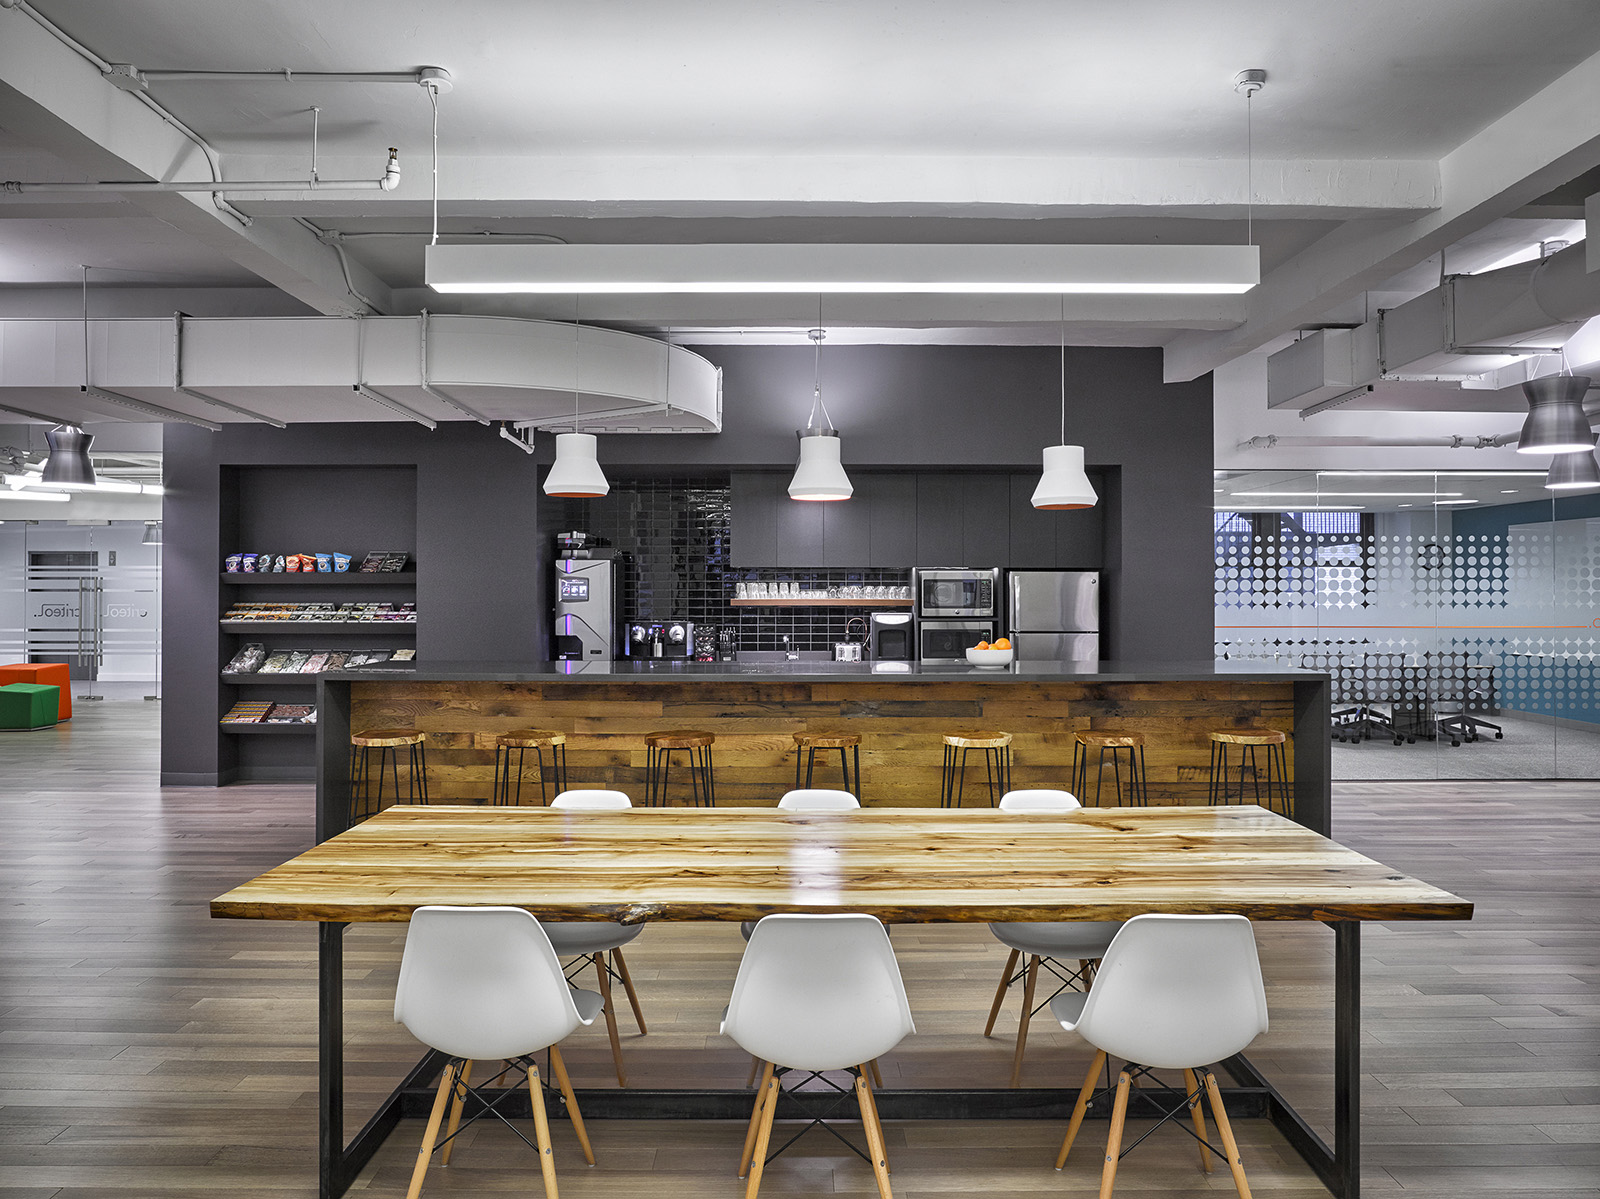 A Tour of Criteo's Cool NYC Office